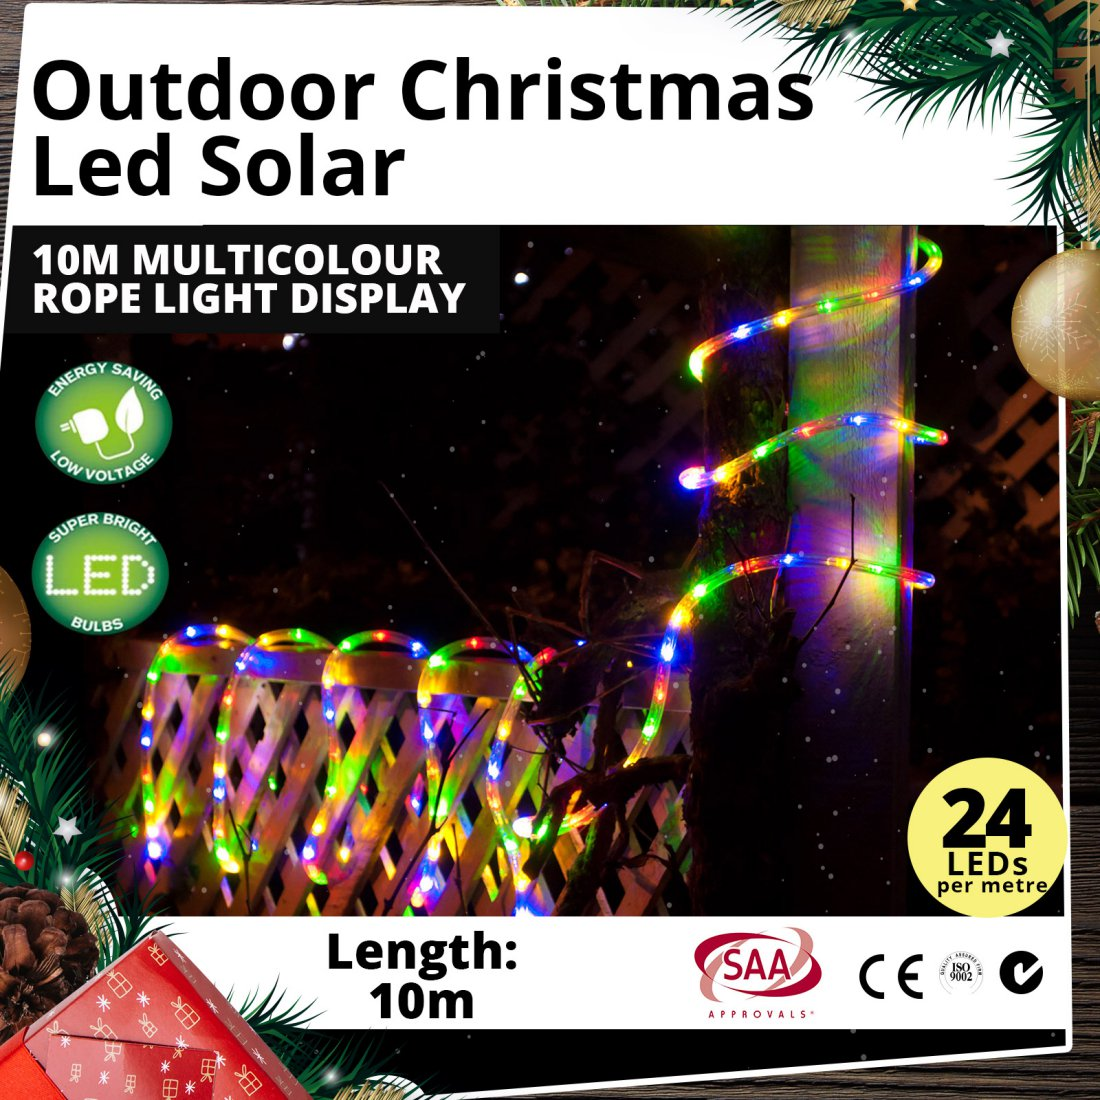 Outdoor LED Solar 10m Multicolour Rope Light Christmas Display